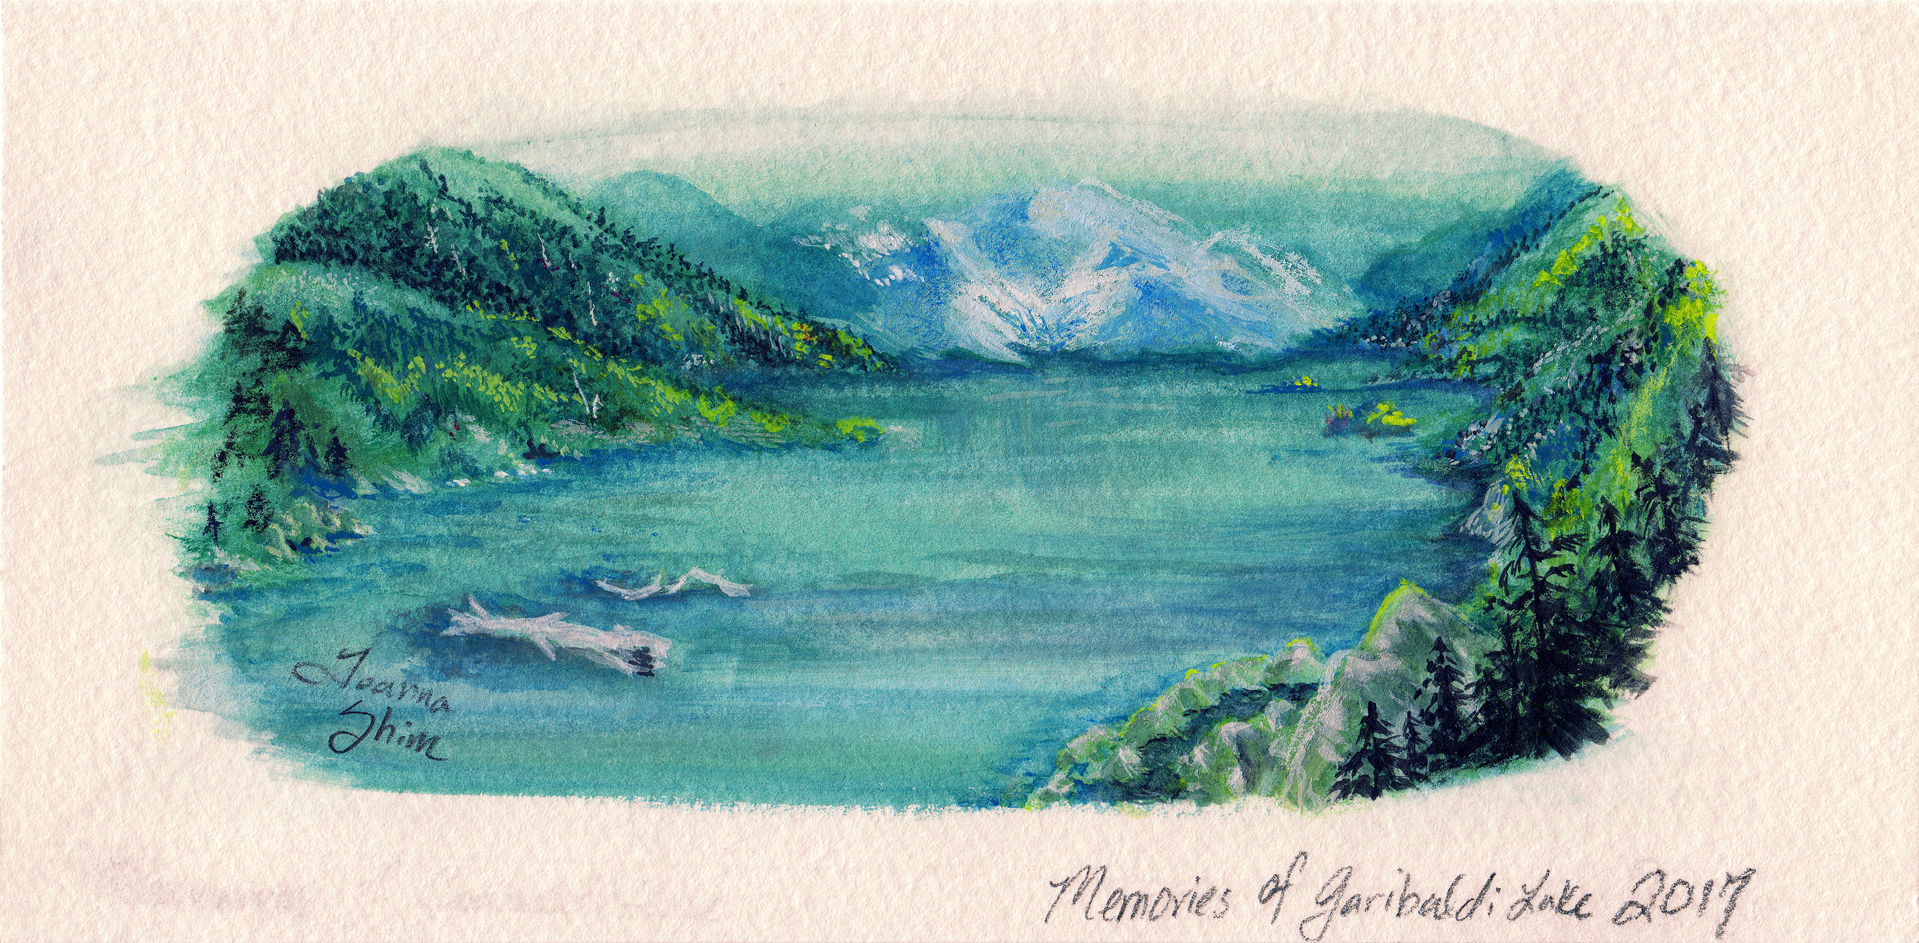 Gouache painting. My Garibaldi Lake adventure was one of the toughest hiking trails I'd been on so far. This breathtaking view at the top of the mountain made it all worthwhile.